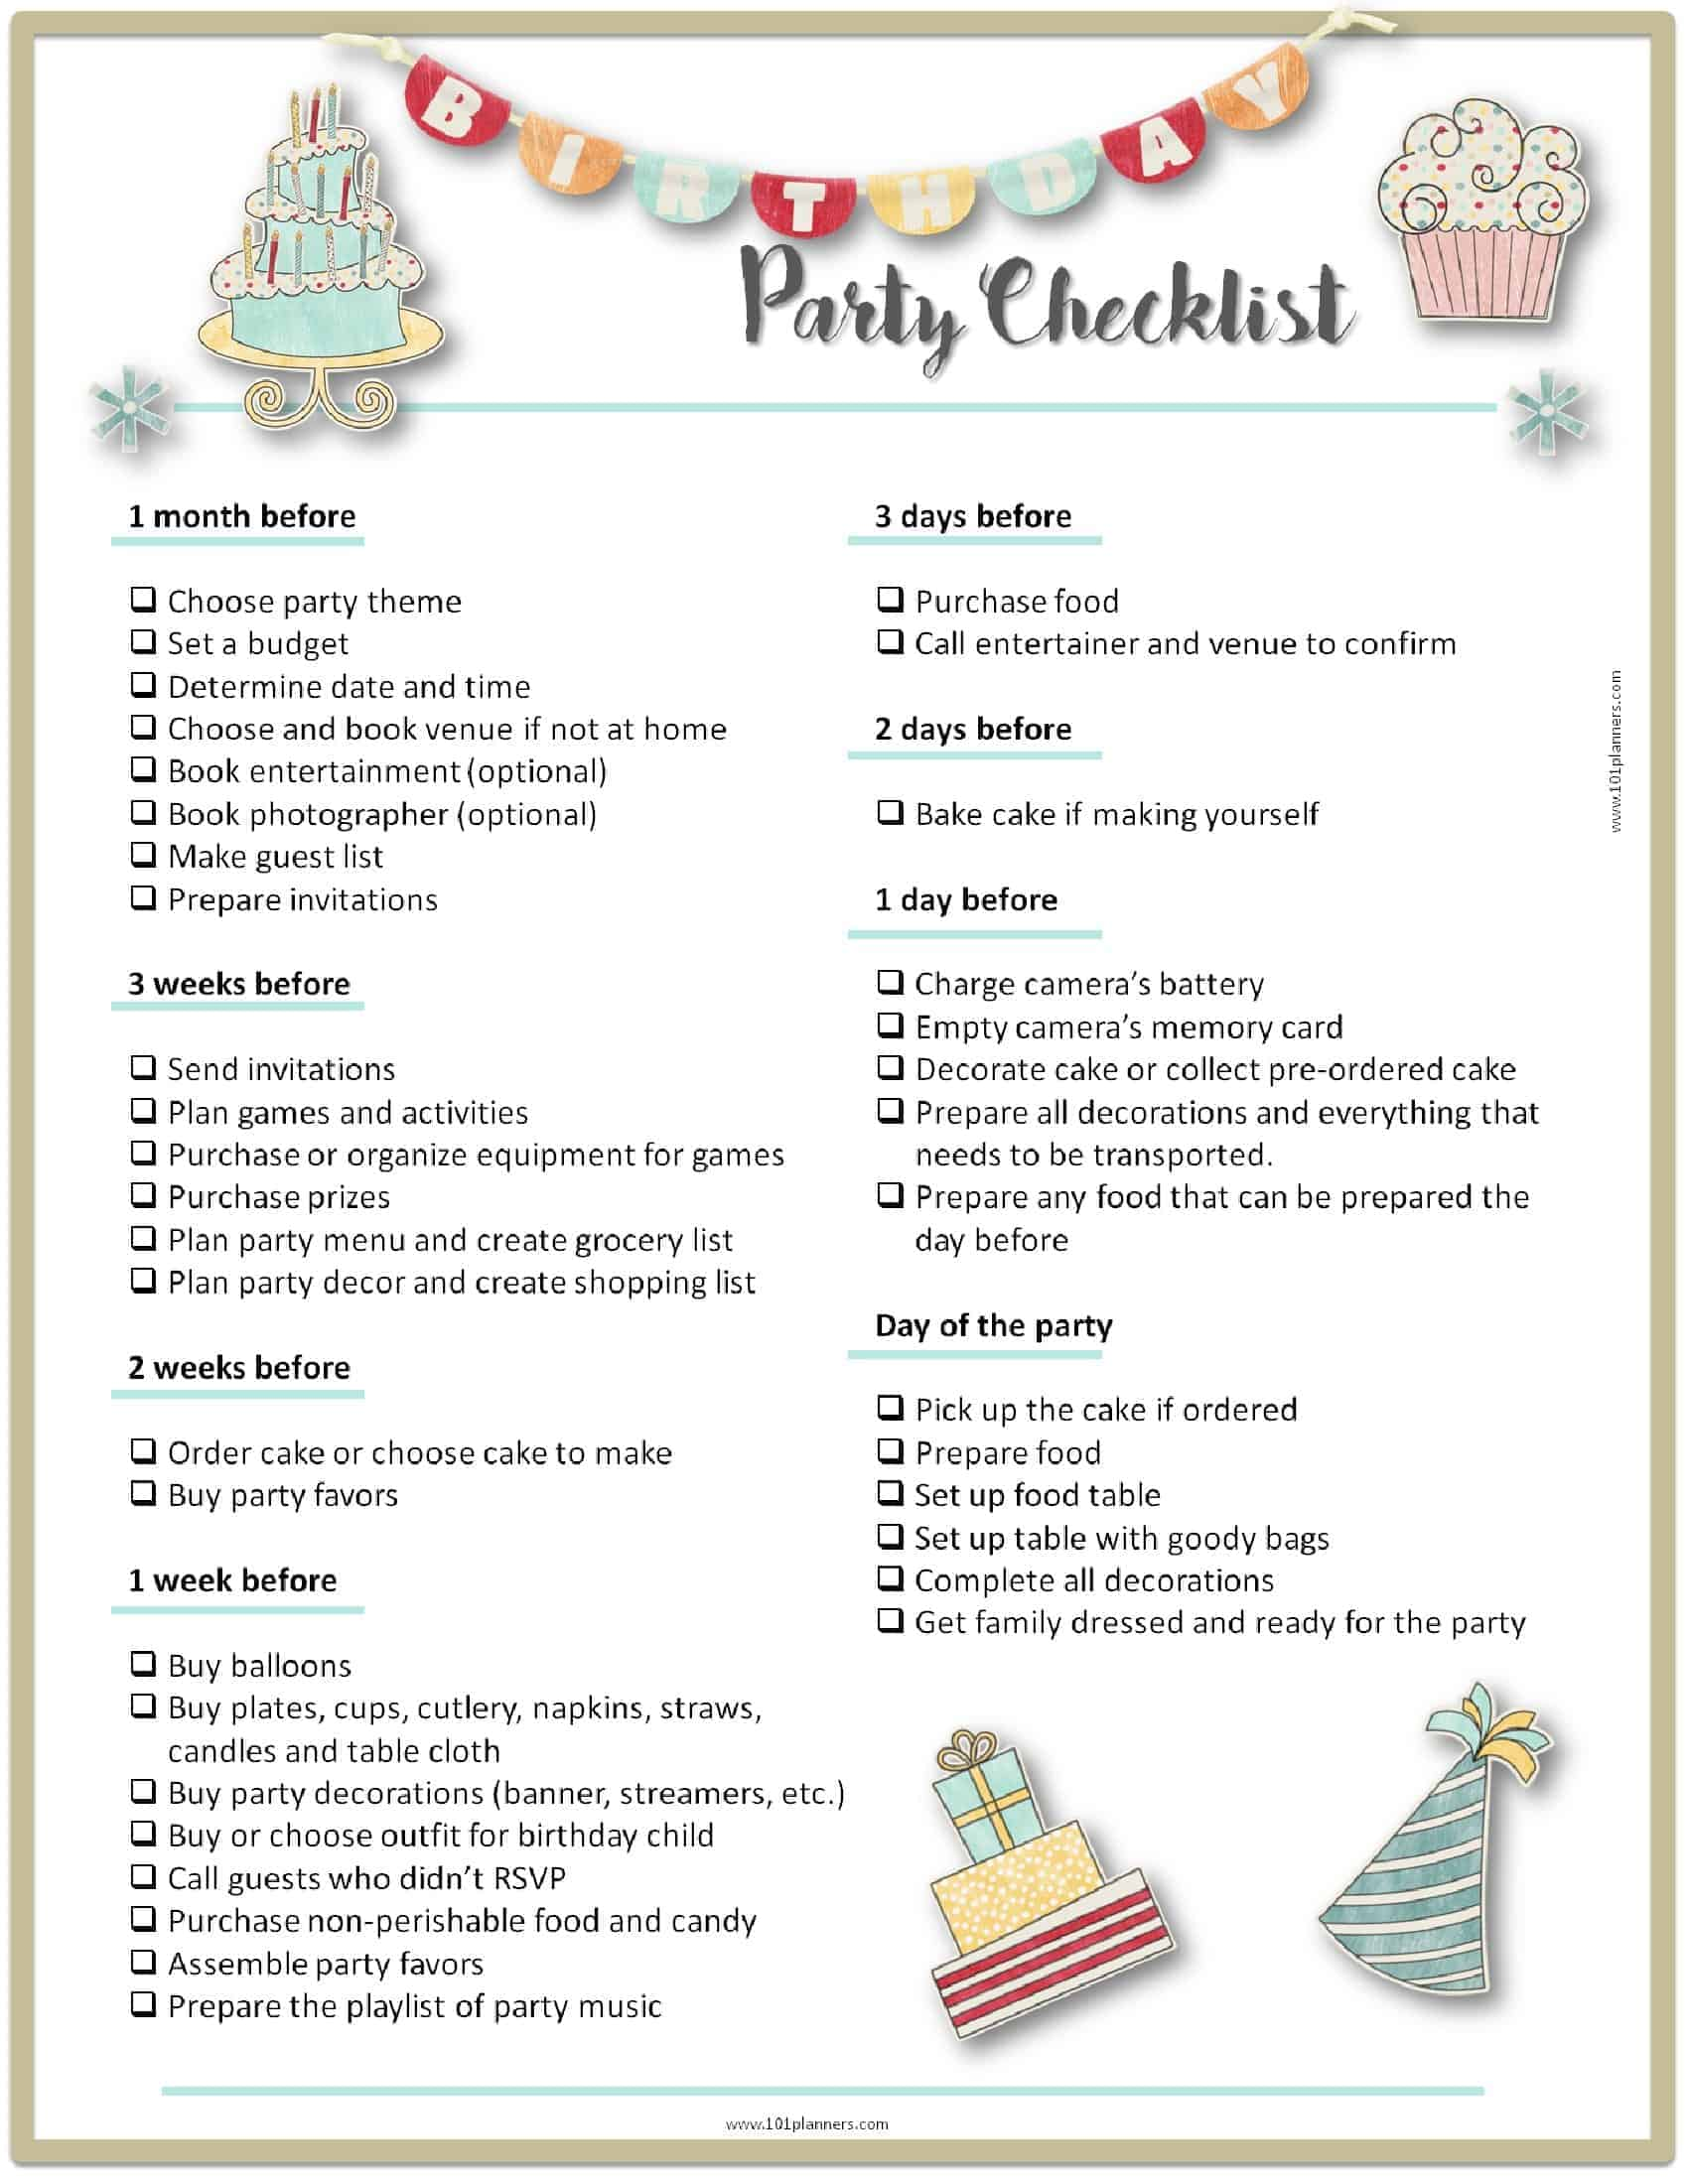 This party planner checklist is a little more colorful than the rest.